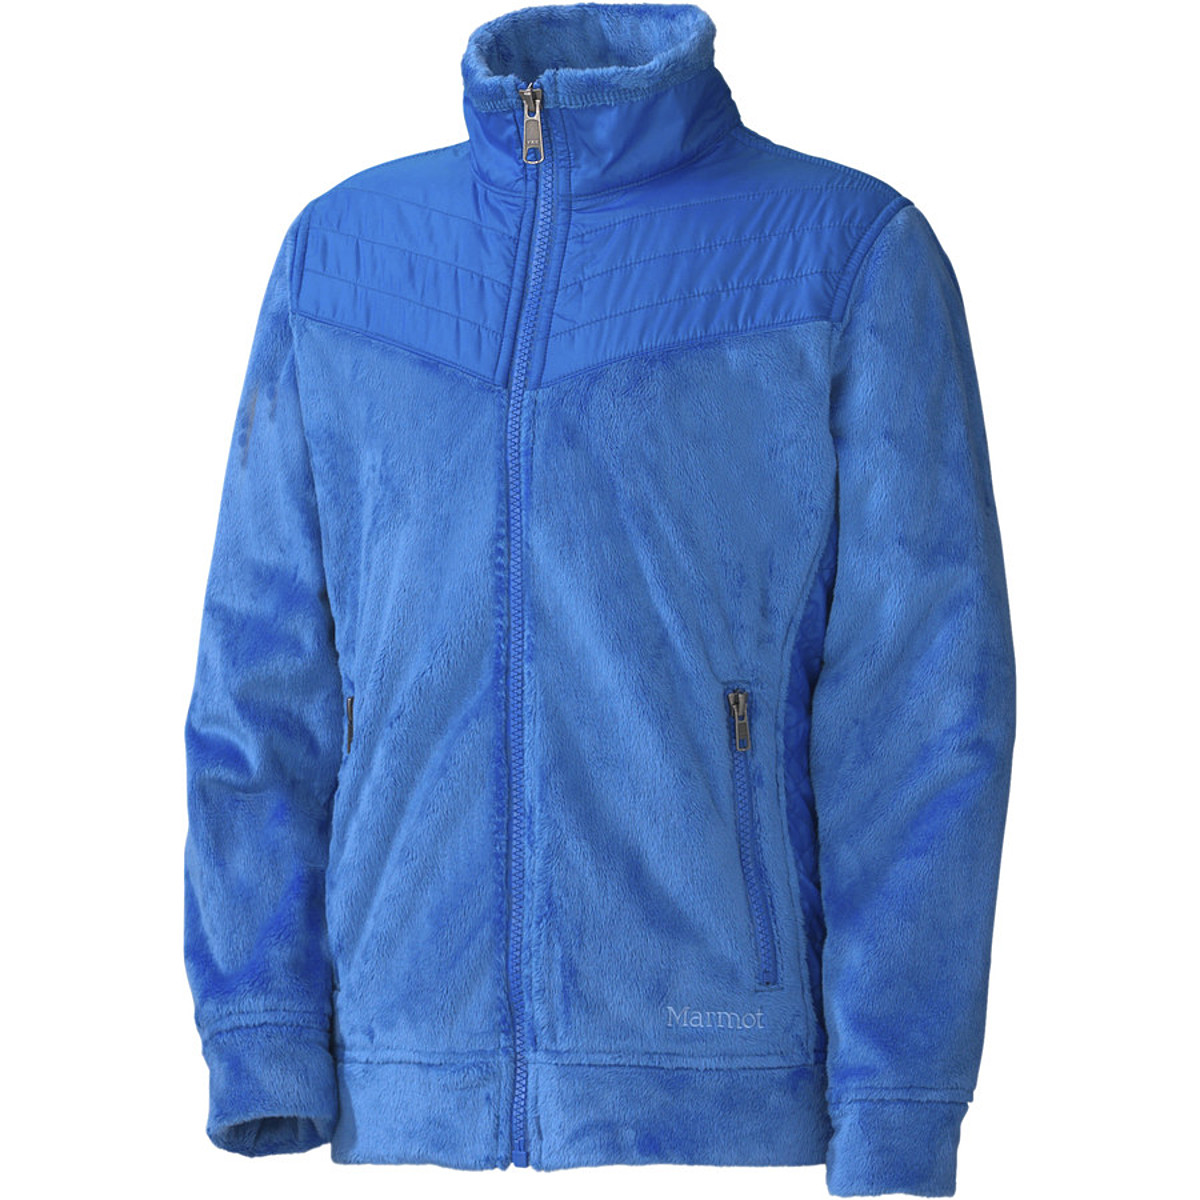 Marmot High Loft Tech Sweater